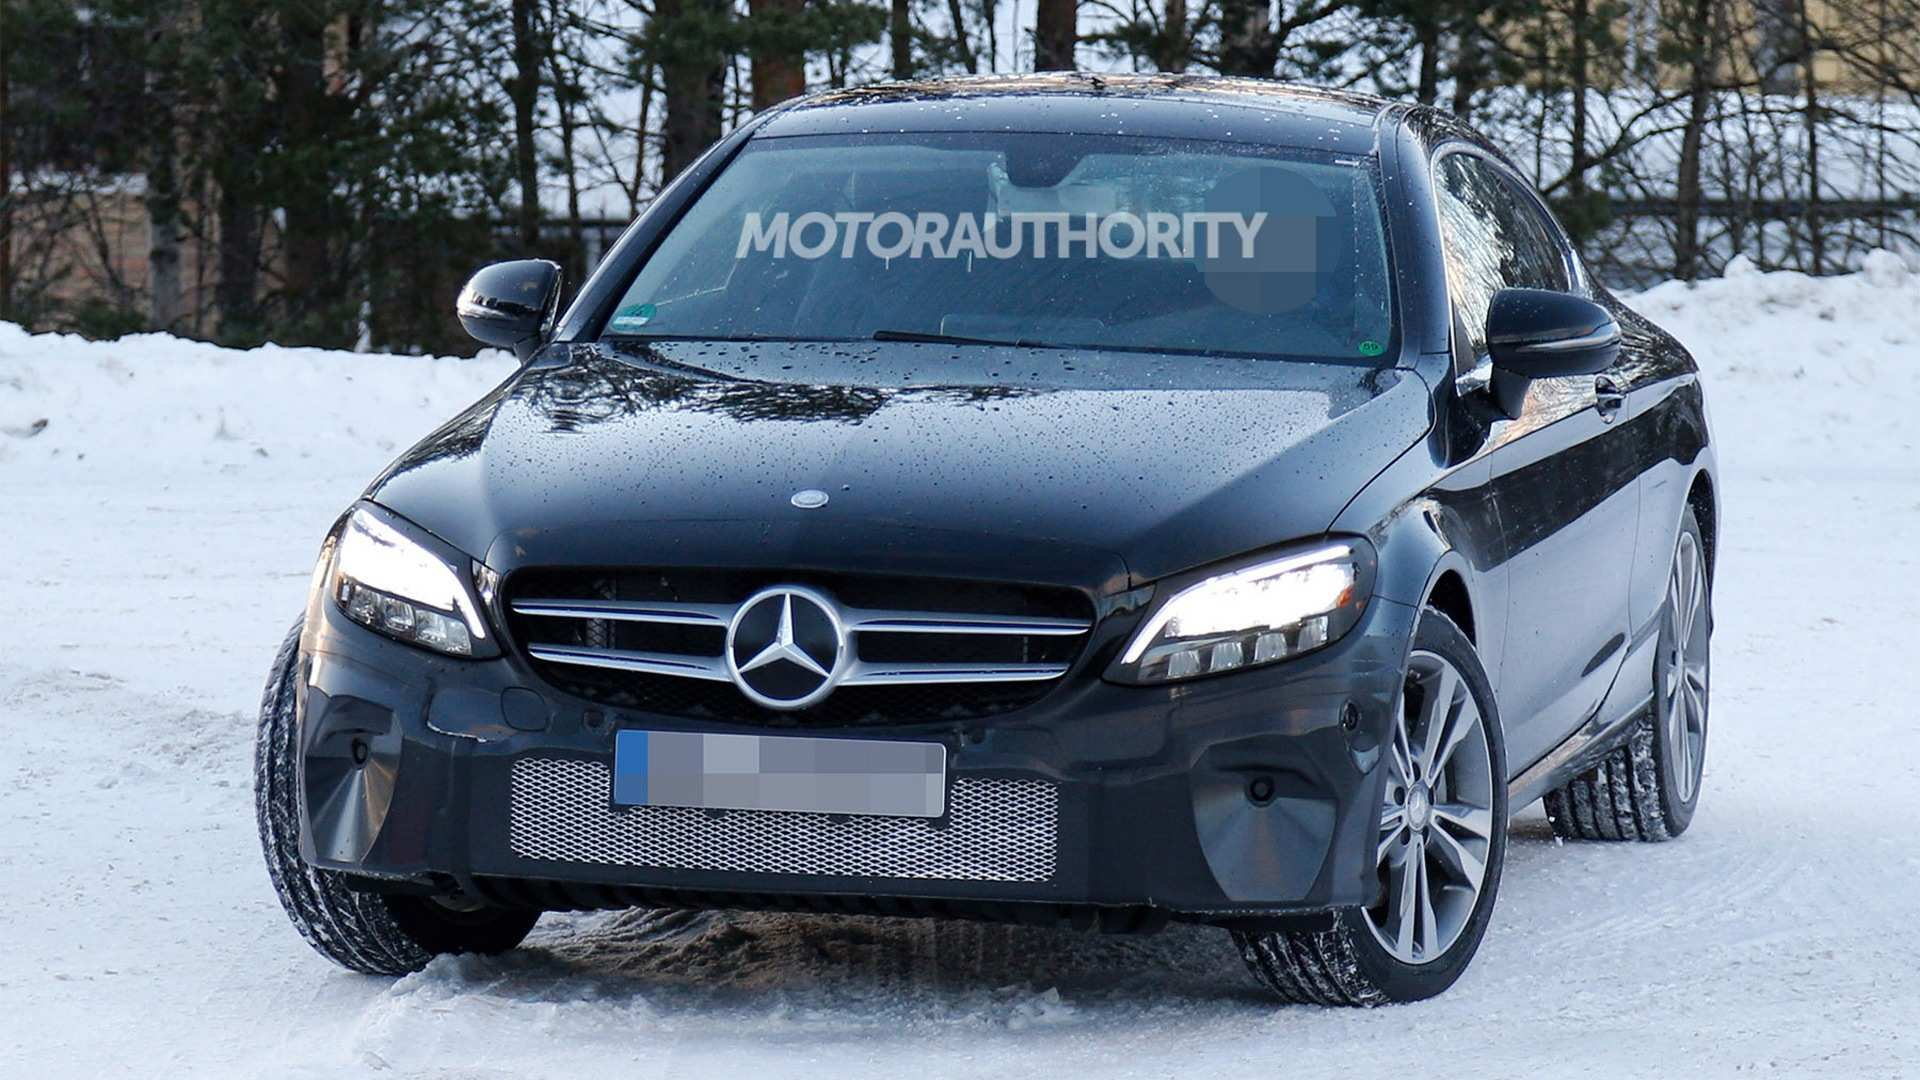 44 Great C300 Mercedes 2020 Prices by C300 Mercedes 2020